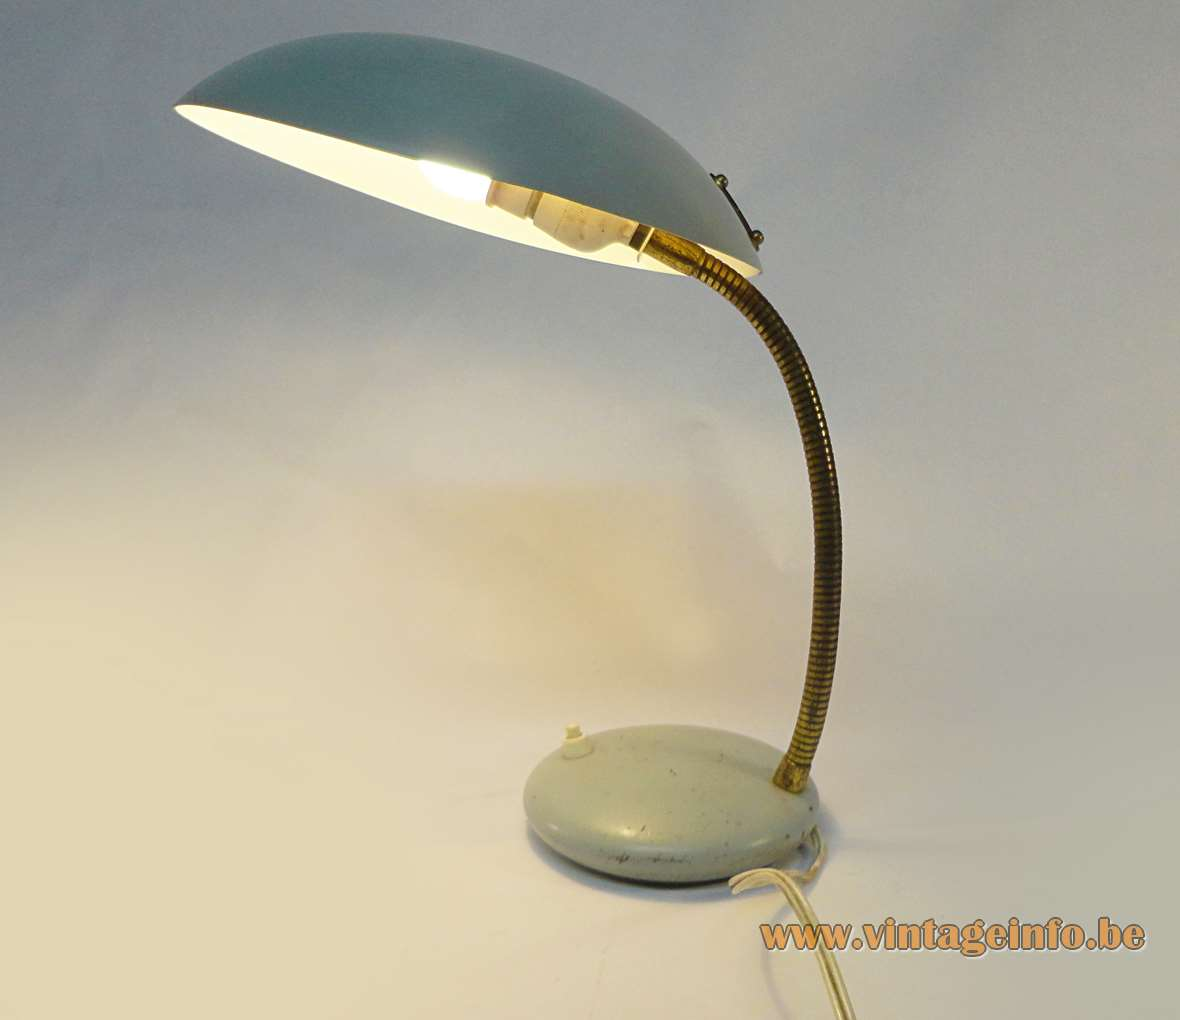 1960s desk lamp Louis Kalff Philips style UFO lampshade blue grey round base brass gooseneck Massive 1970s MCM Mid-Century Modern